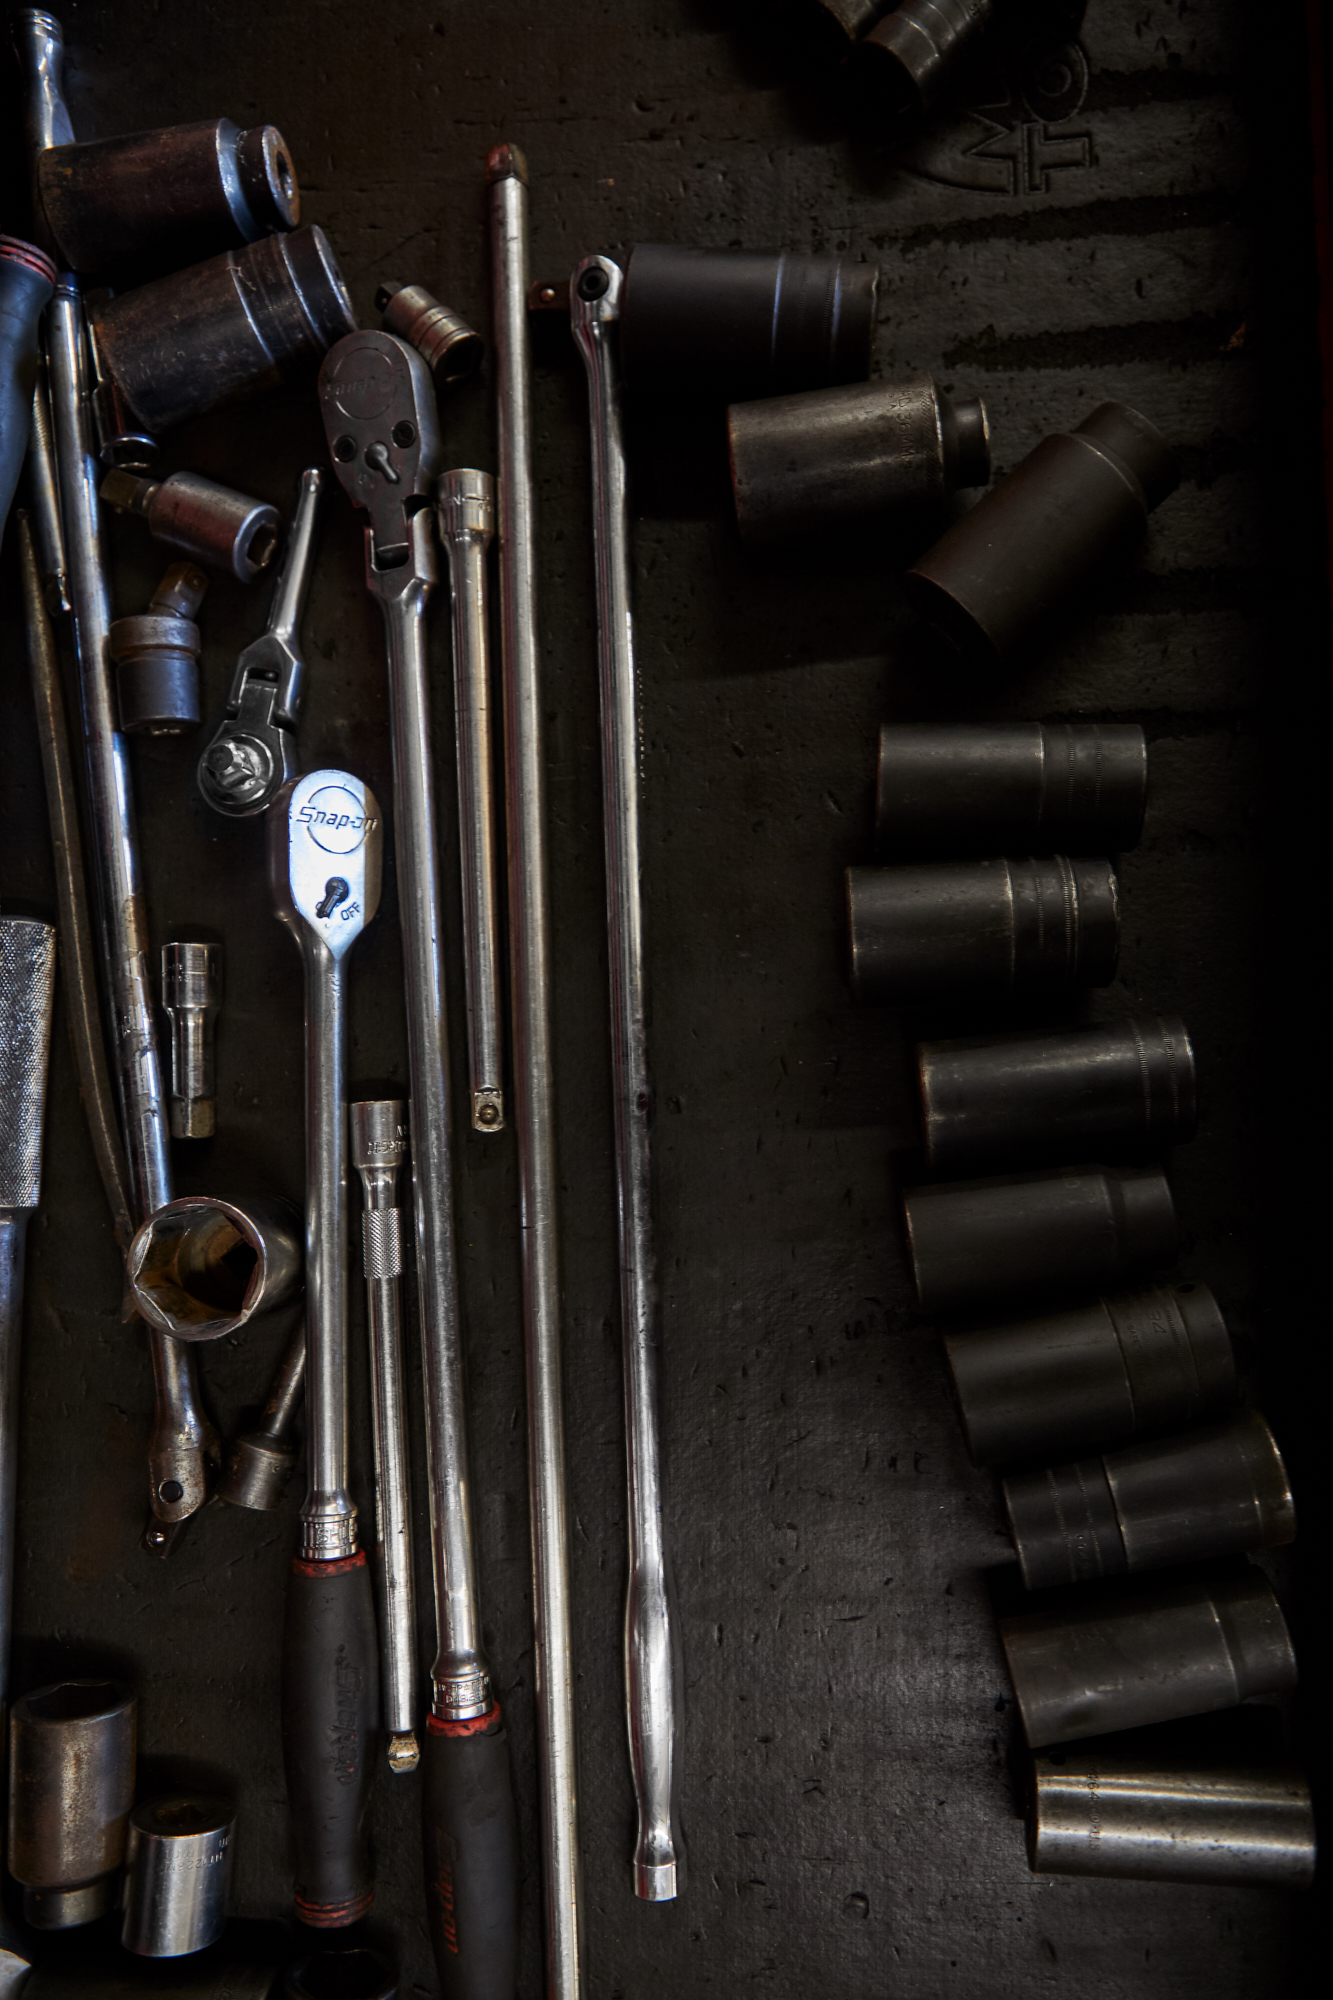 Socket wrenches